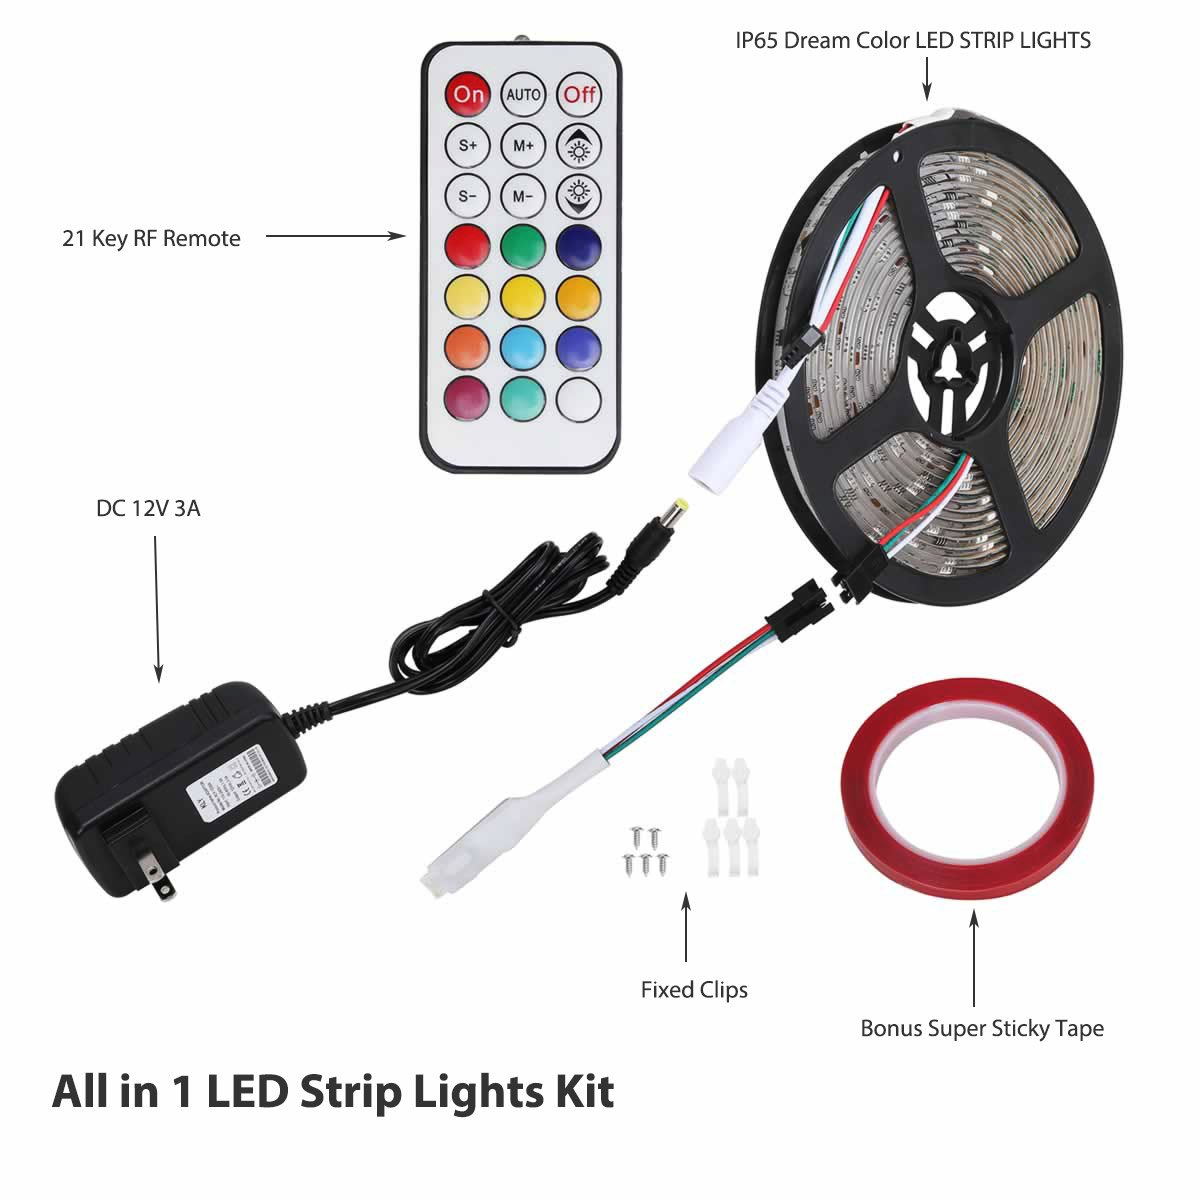 G Geekeep 12v Rgb Led Strip Lights Kit Dream Color Wiring Diagram Addressable Lighting With Chasing Effectwaterproof Neonpixel Flexible Tape